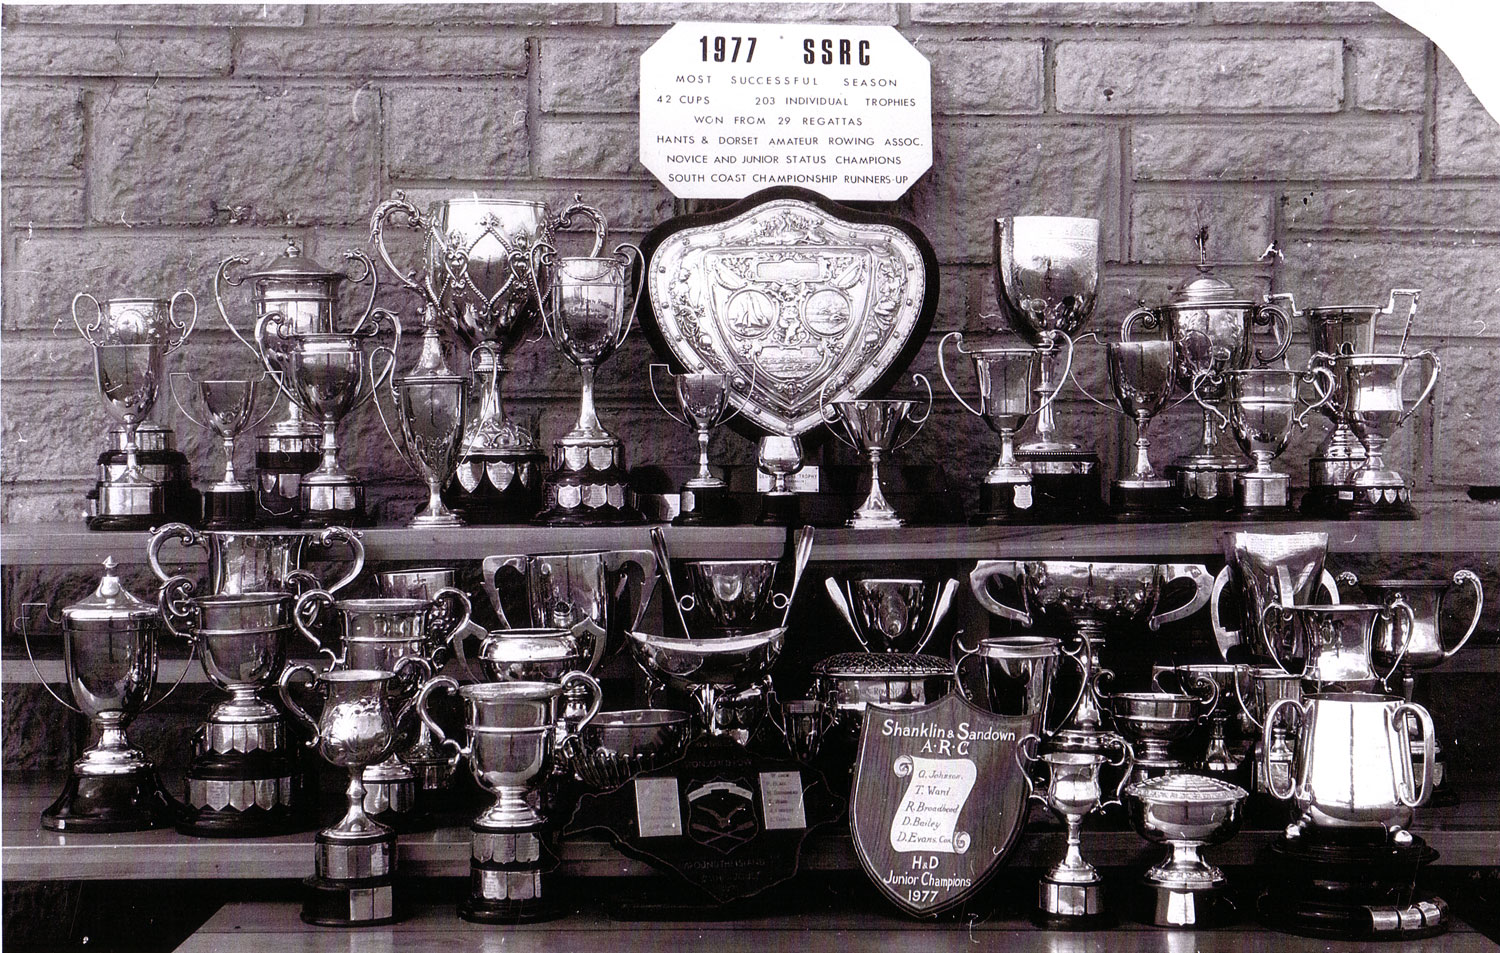 1977 a record year for trophies!